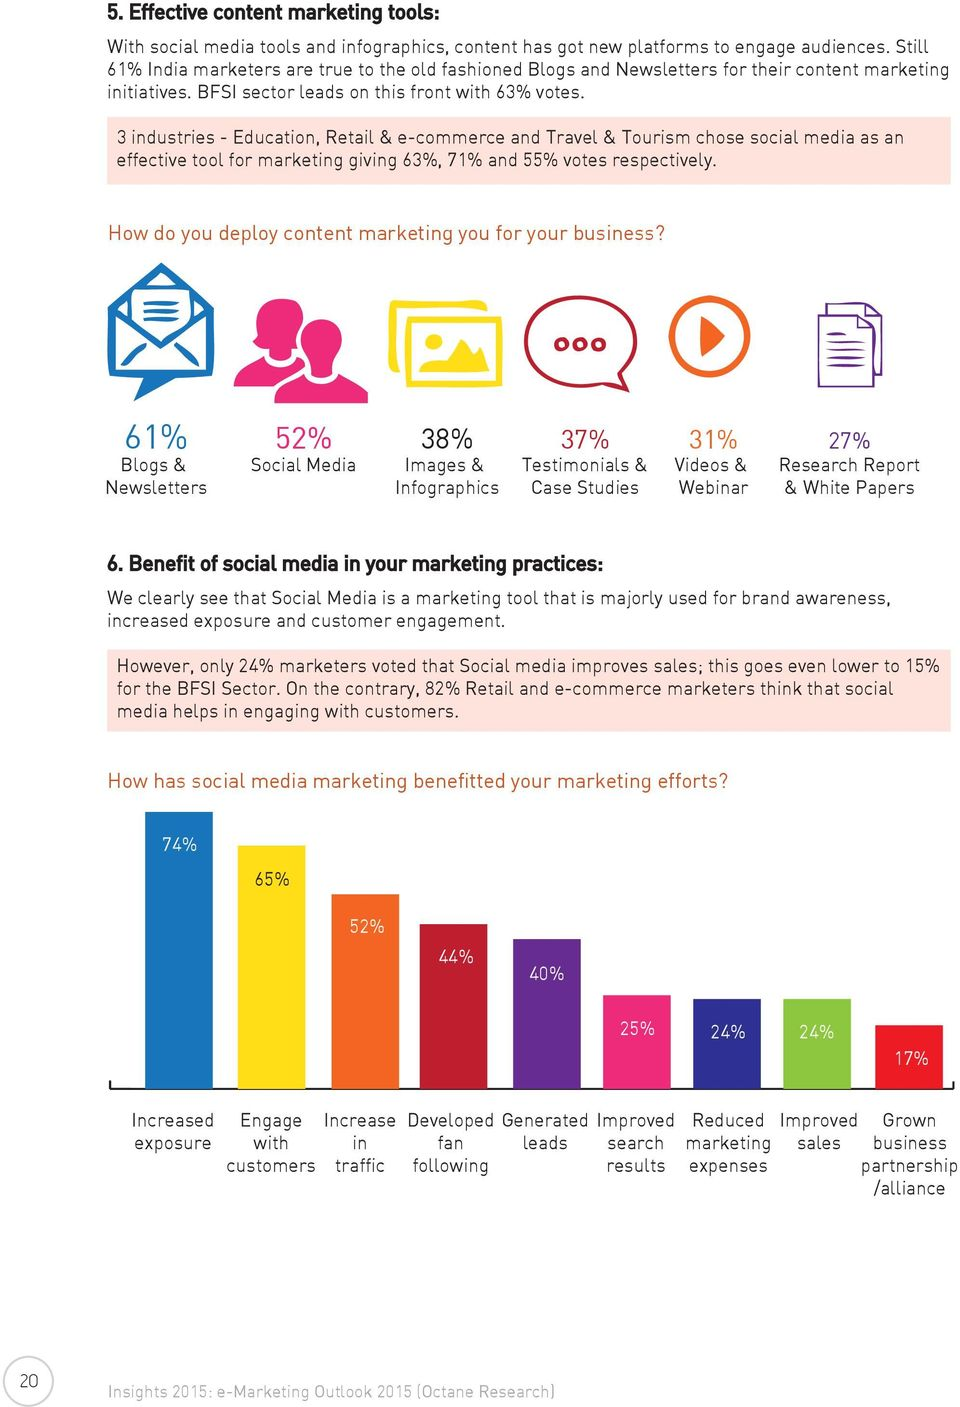 3 industries - Education, Retail & e-commerce and Travel & Tourism chose social media as an effective tool for marketing giving 63%, 71% and 55% votes respectively.